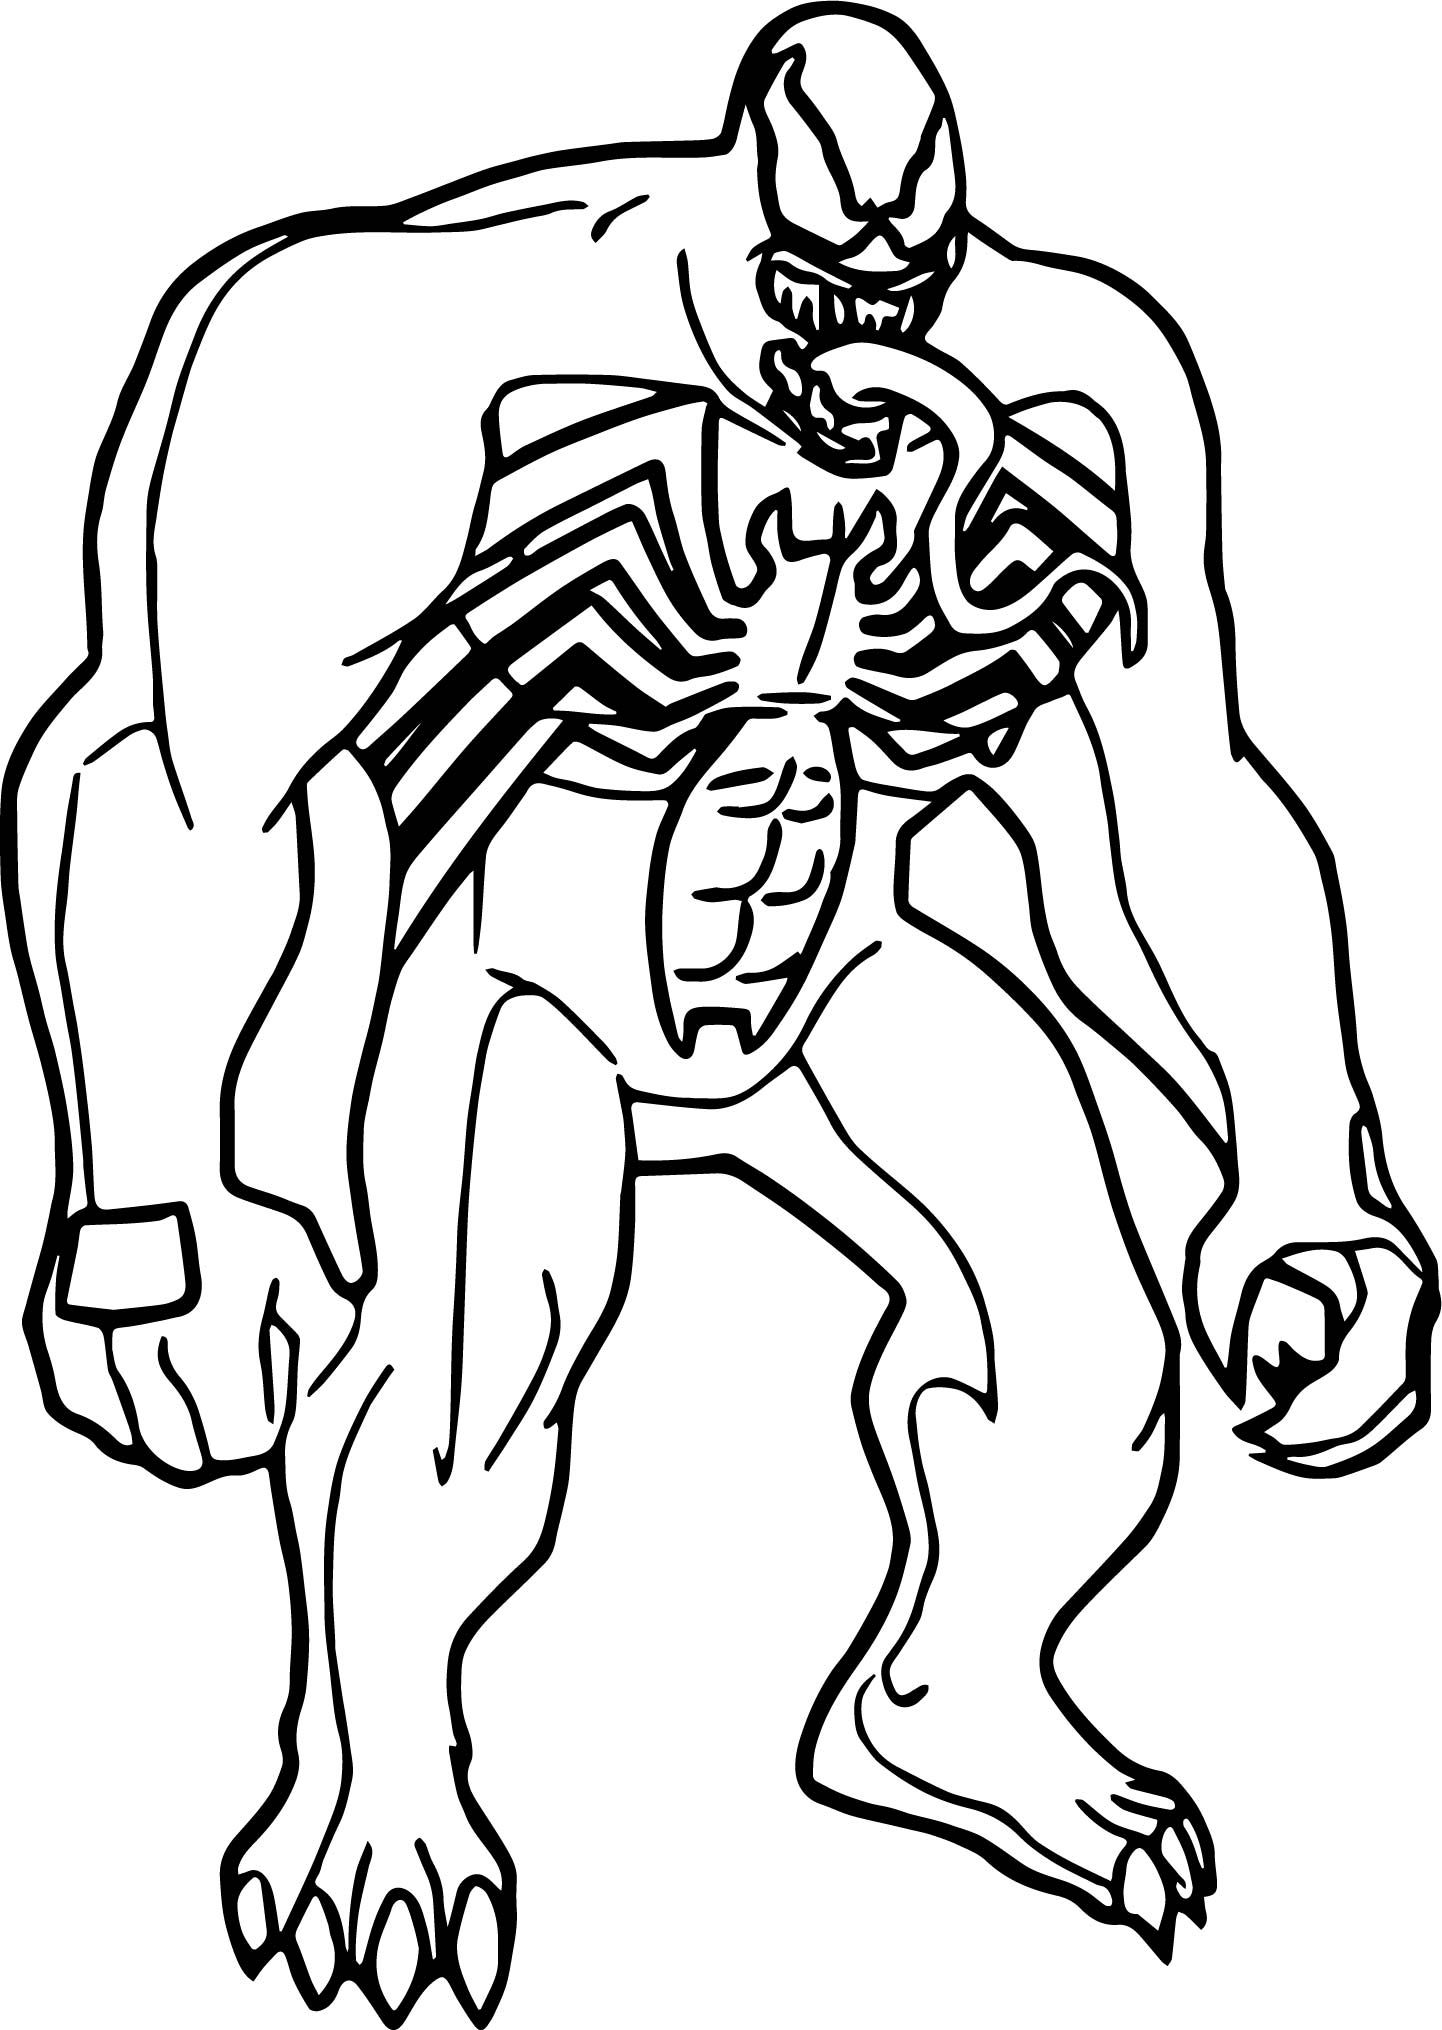 Cool Marvel Venom Coloring Page Avengers Coloring Pages